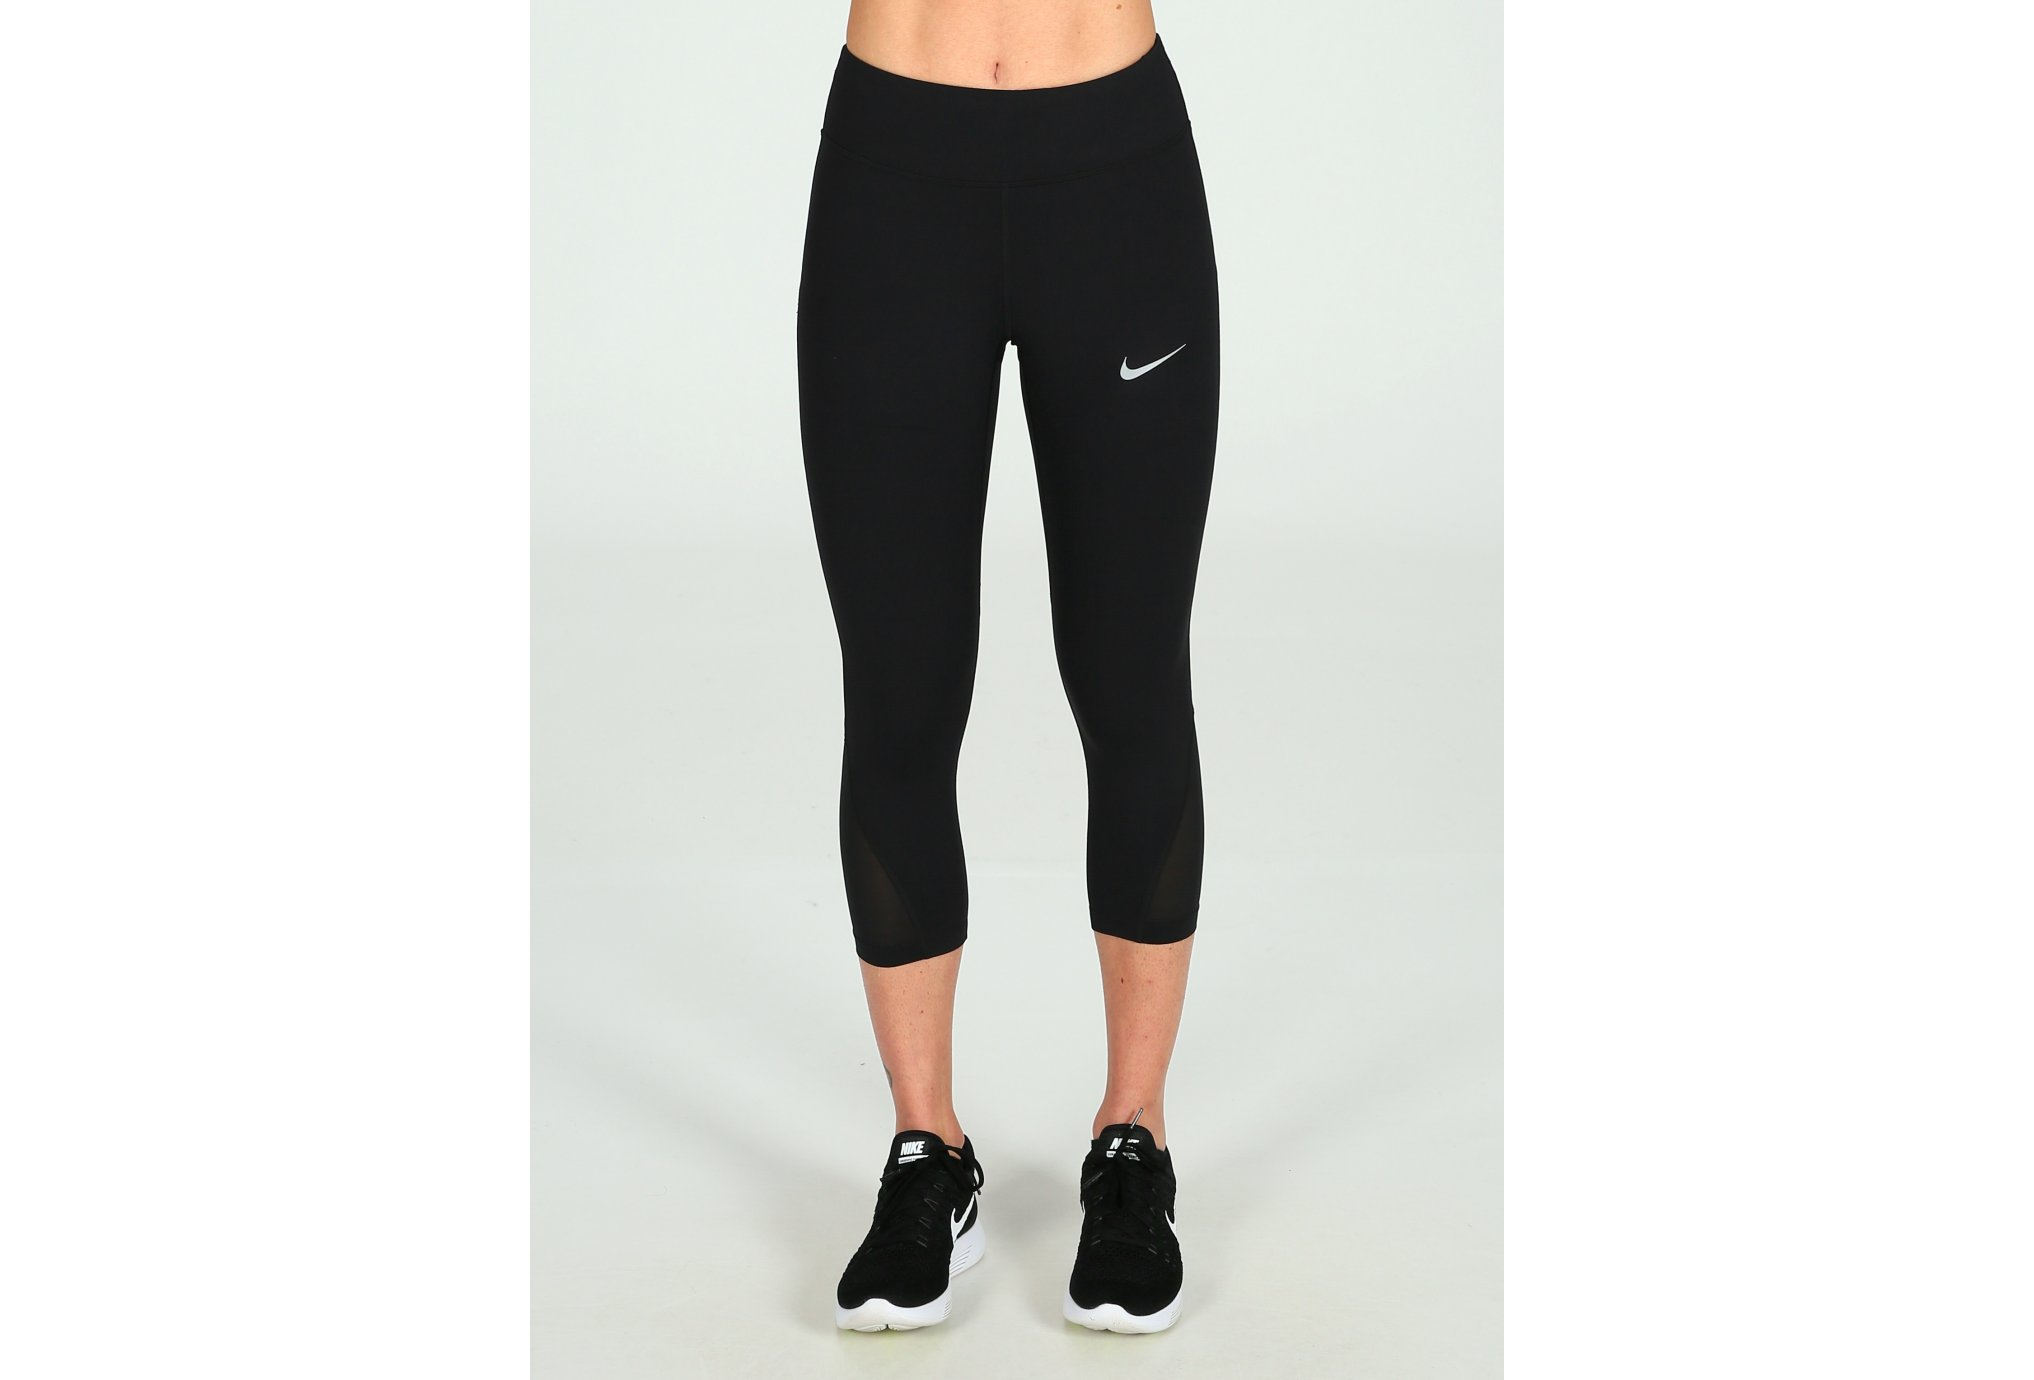 f1b6623e974 Nike Power Epic Lux Running Capri W vêtement running femme